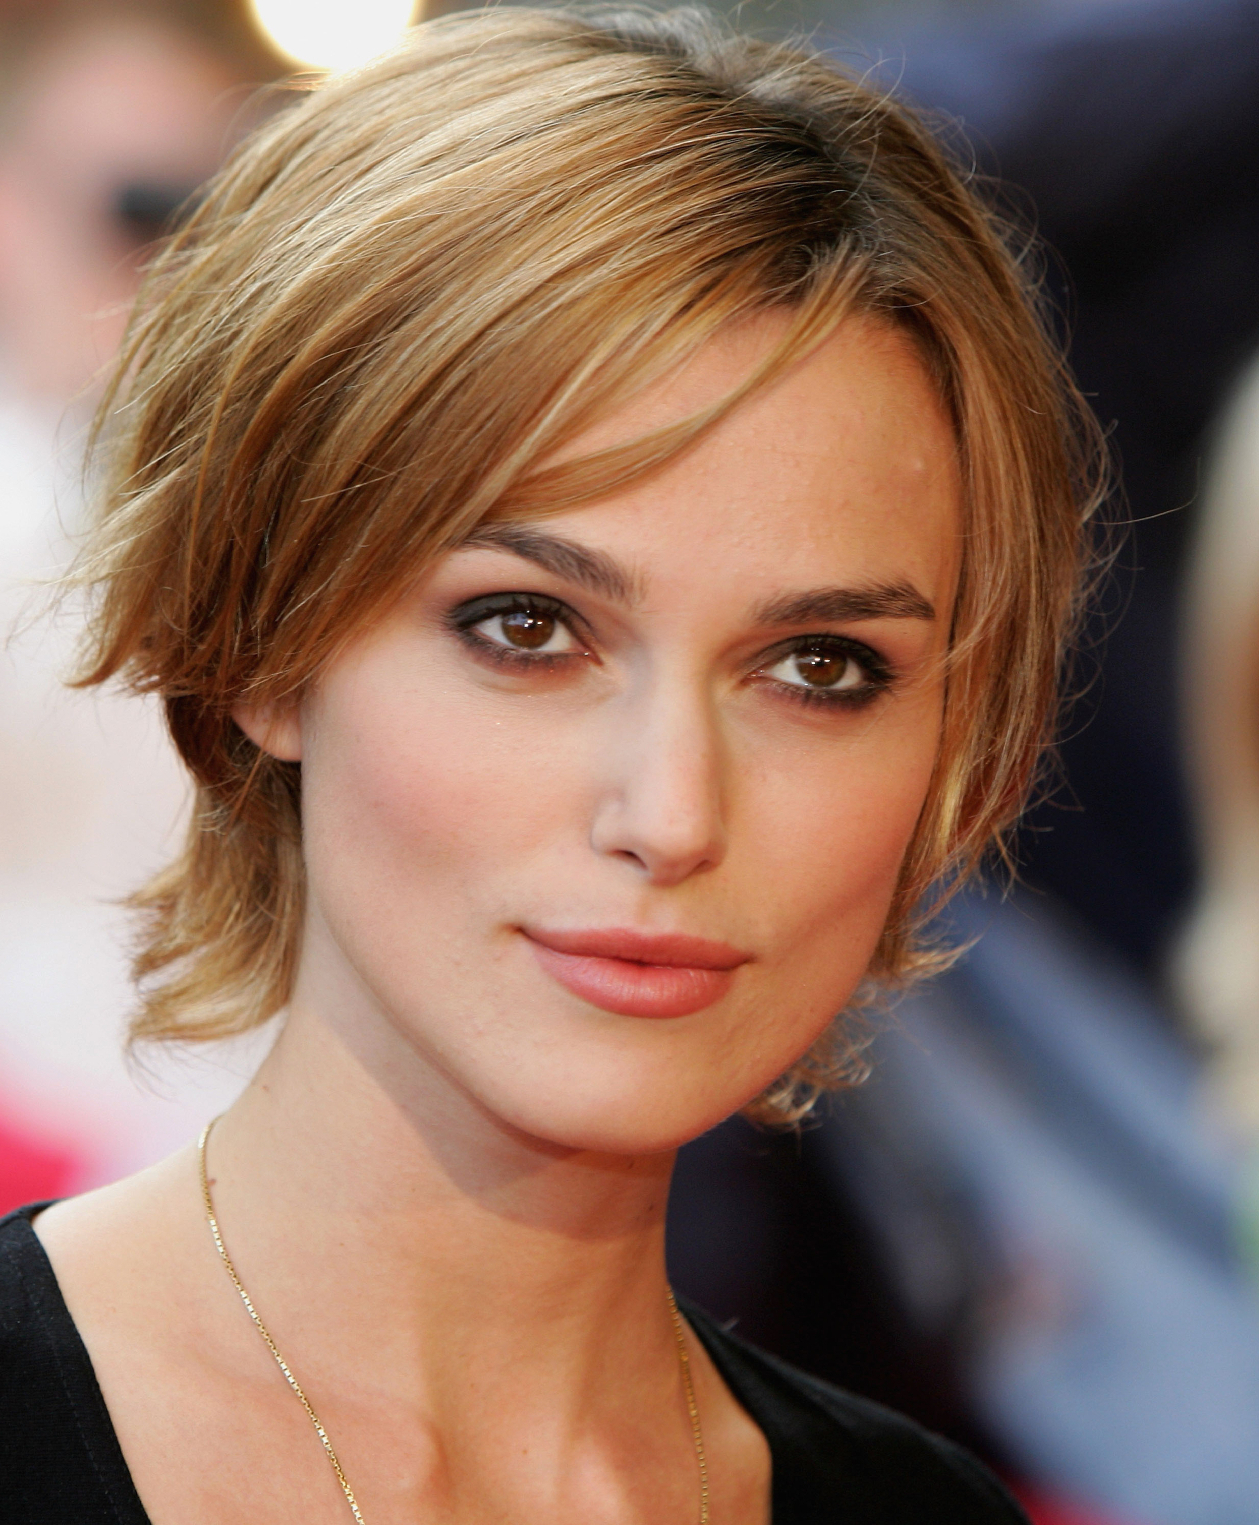 Top 5 Hairstyles For Diamond Shaped Faces – Be Inspired Salon Pertaining To Short Haircuts For Square Jawline (View 20 of 25)